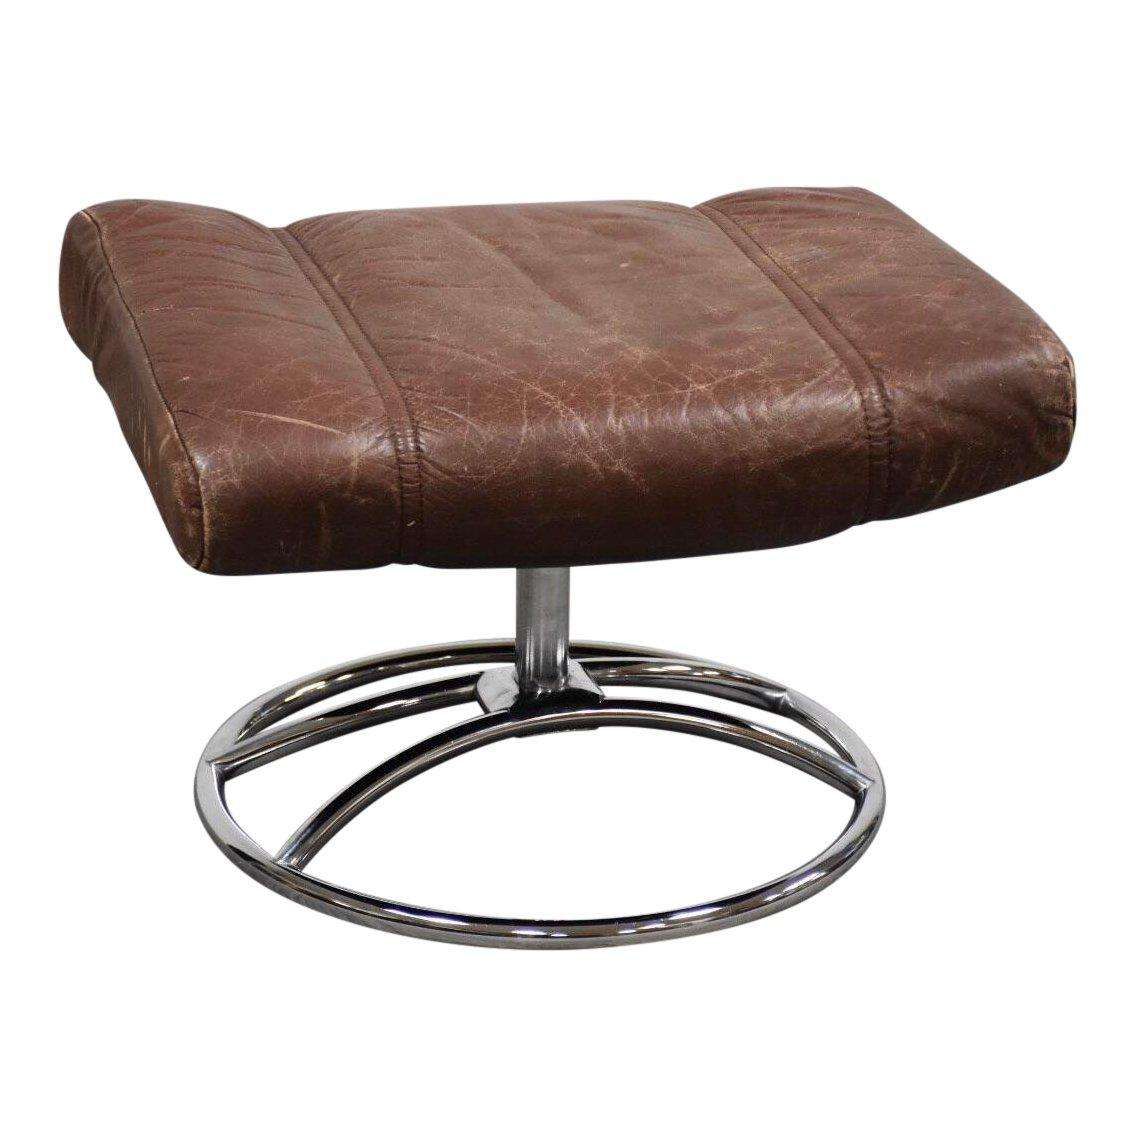 Astounding 1970S Vintage Ekornes Brown Leather And Chrome Ottoman Pabps2019 Chair Design Images Pabps2019Com